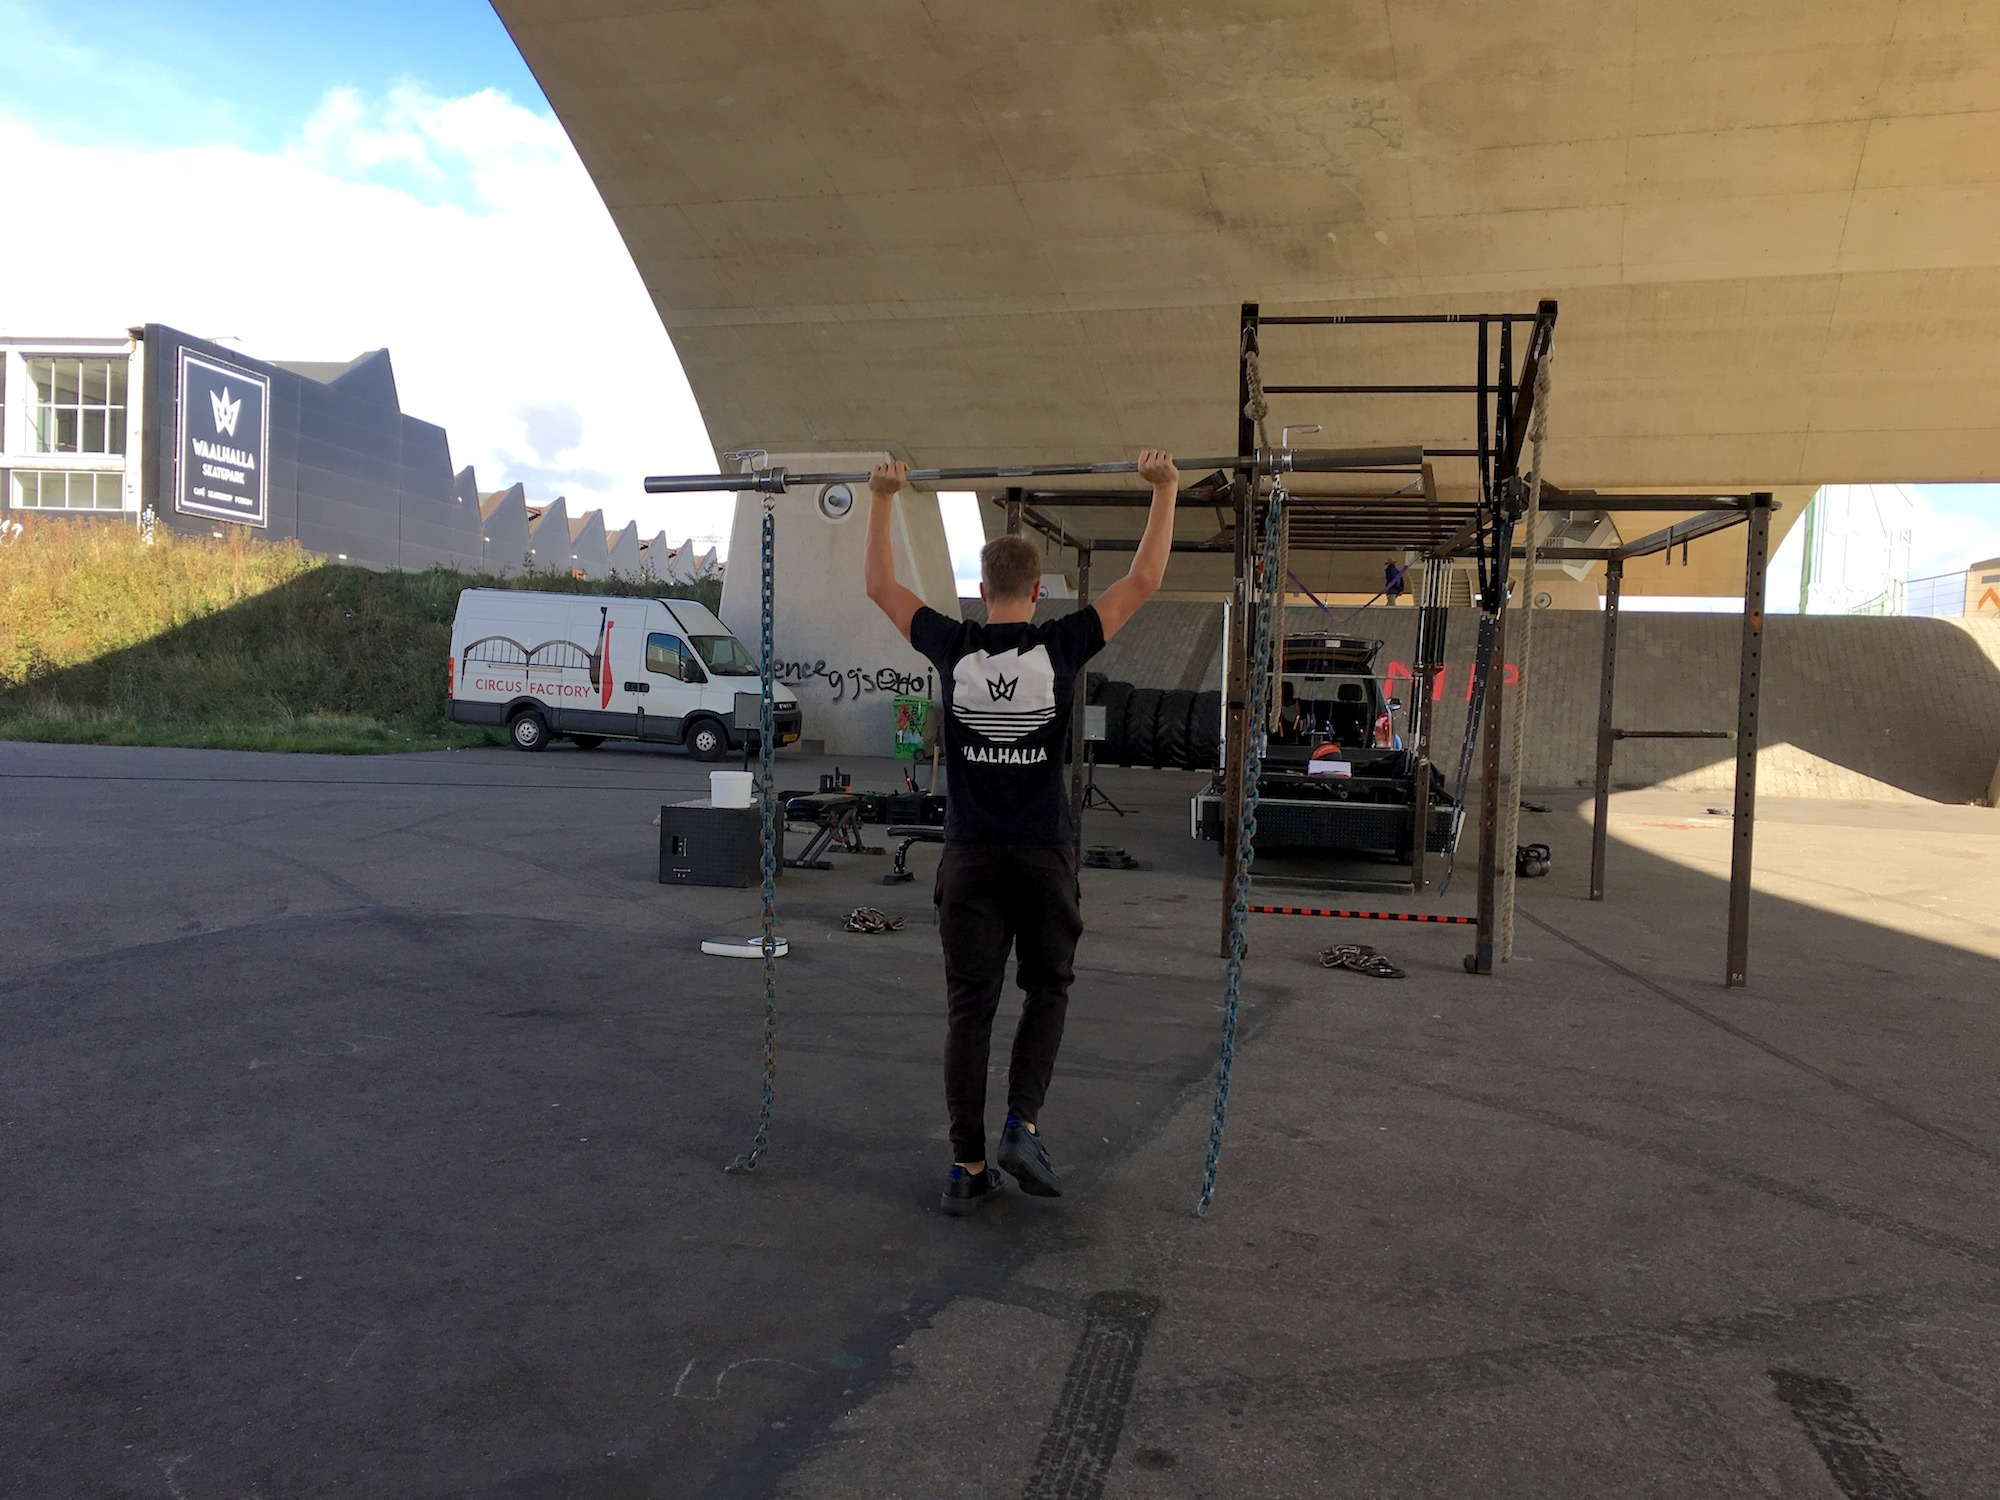 NYMA OUTDOOR GYM 07-10-2018